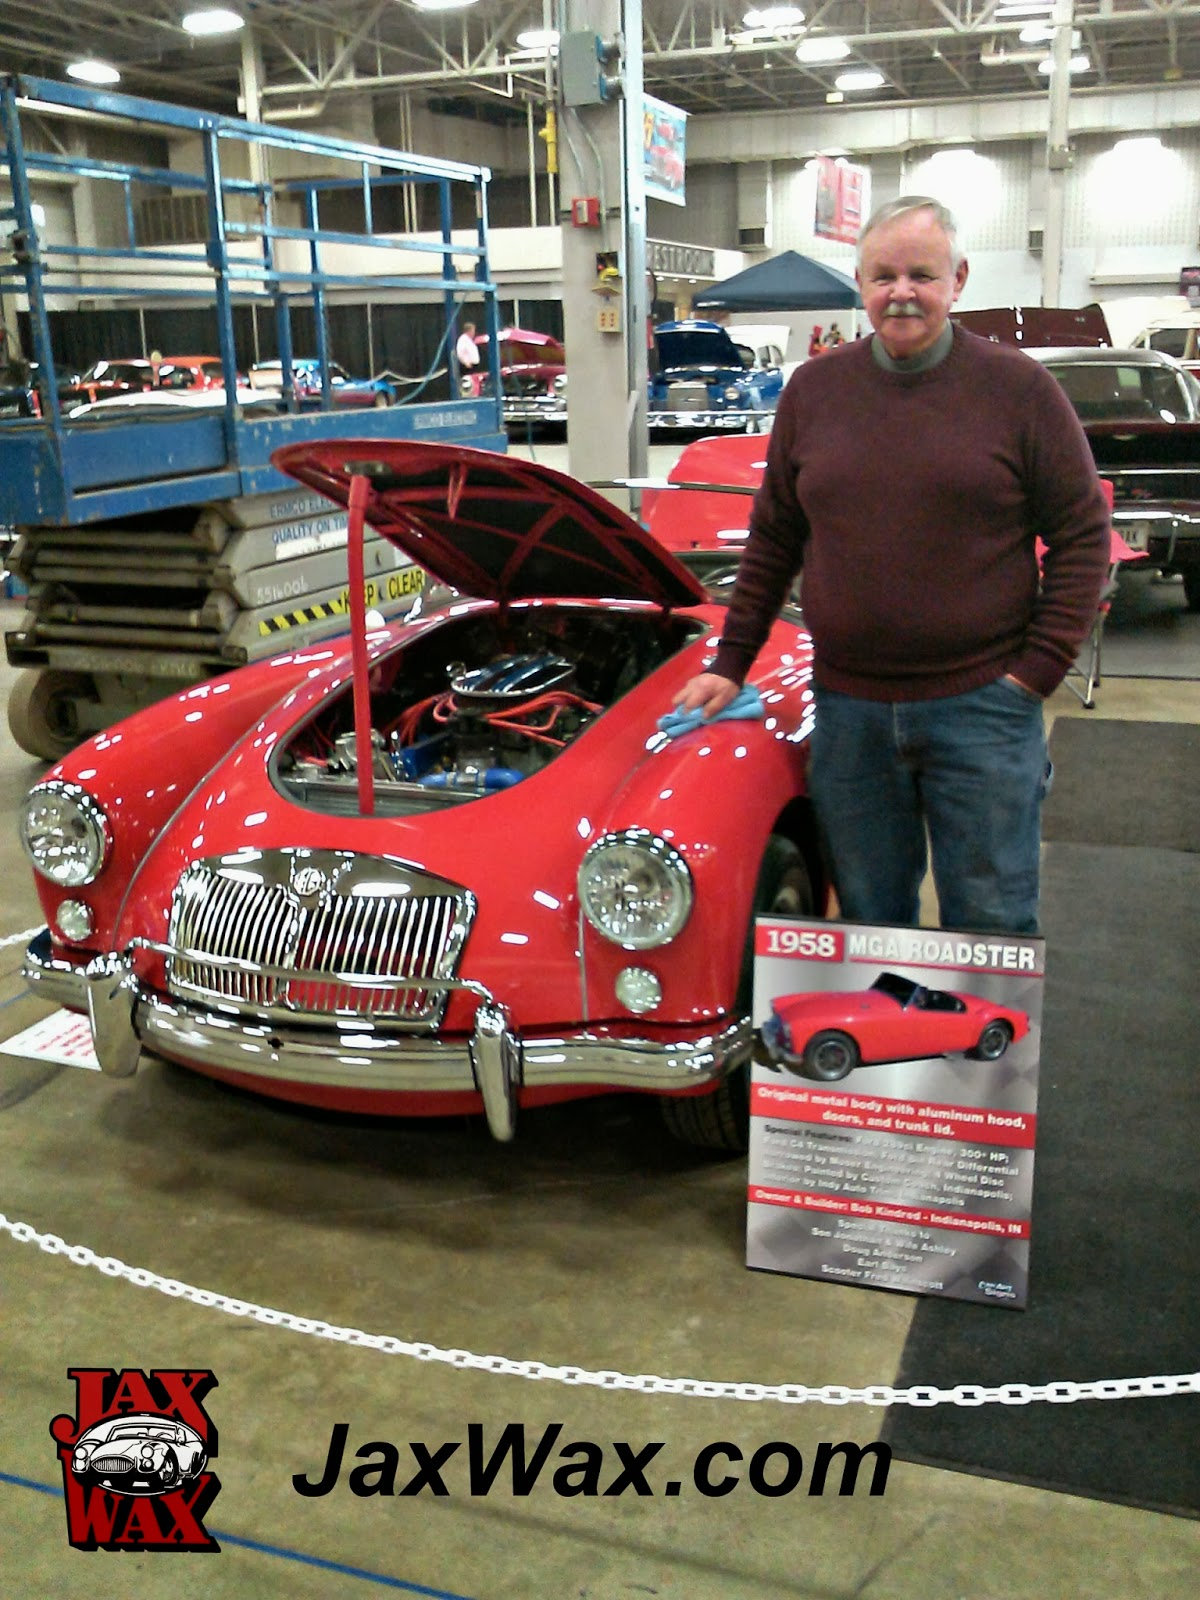 1958 MGA Roadster Indianapolis World of Wheels Jax Wax Customer